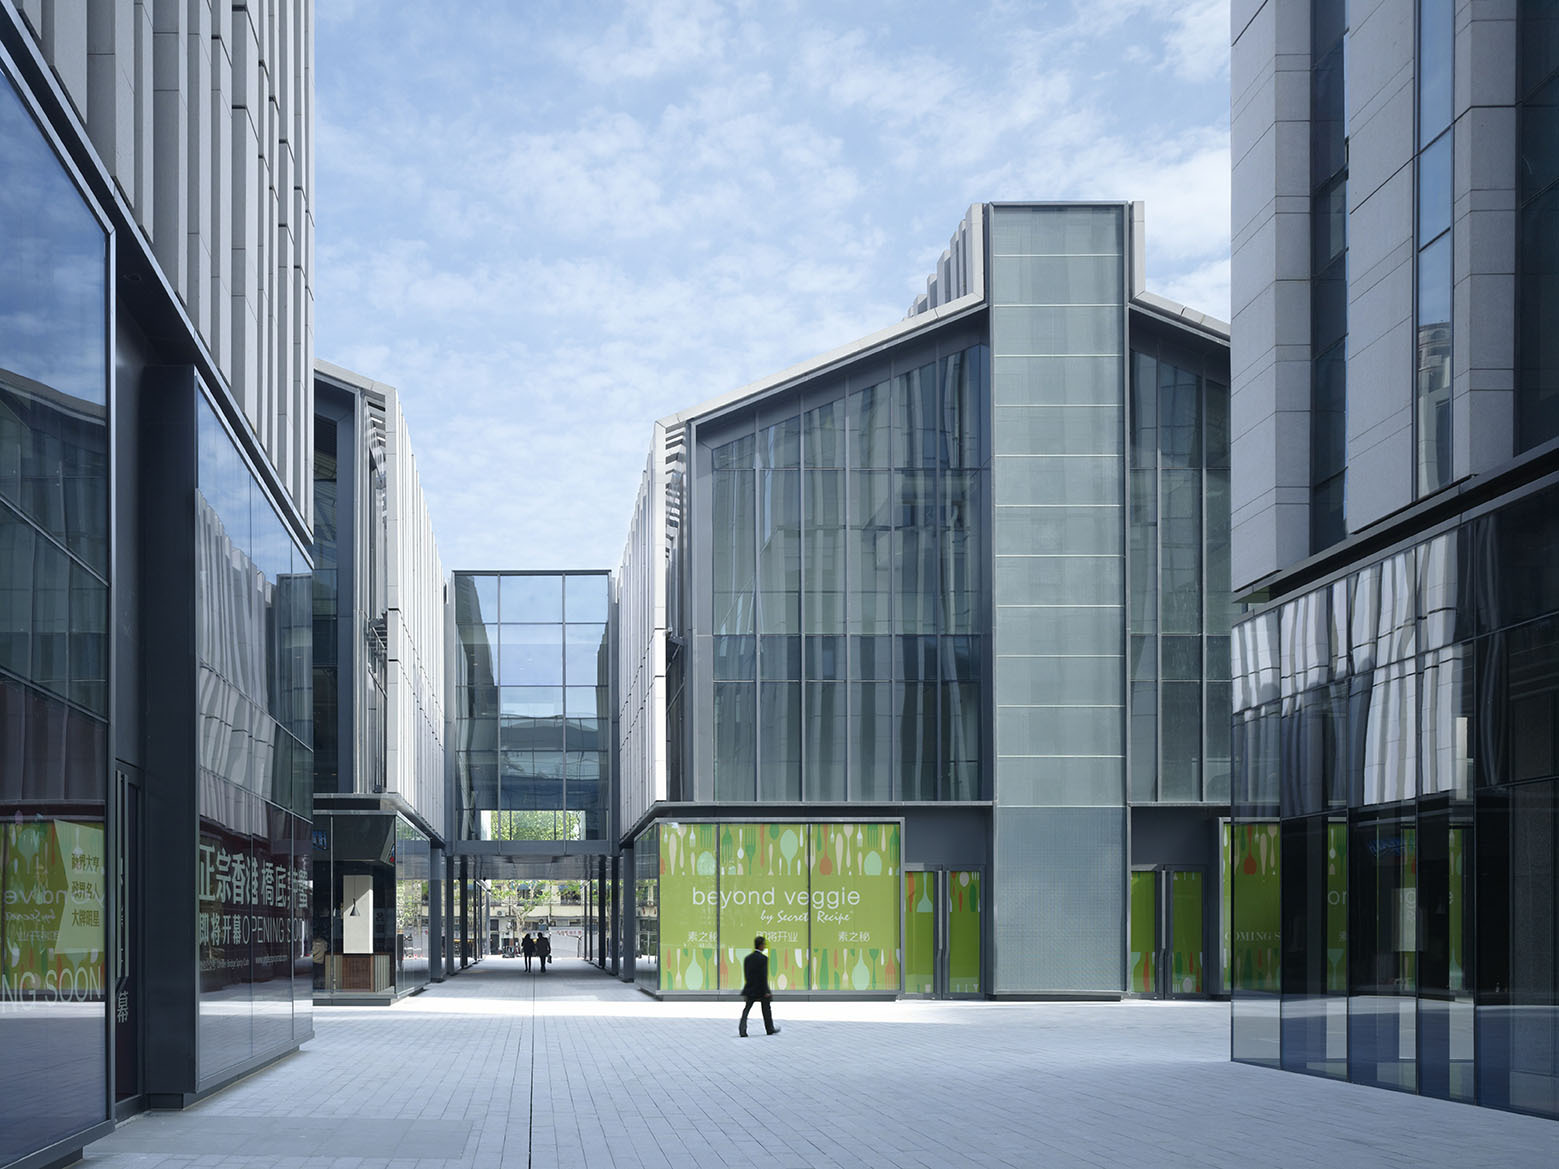 Gallery of soho fuxing lu gmp architekten 16 - Soho architekten ...